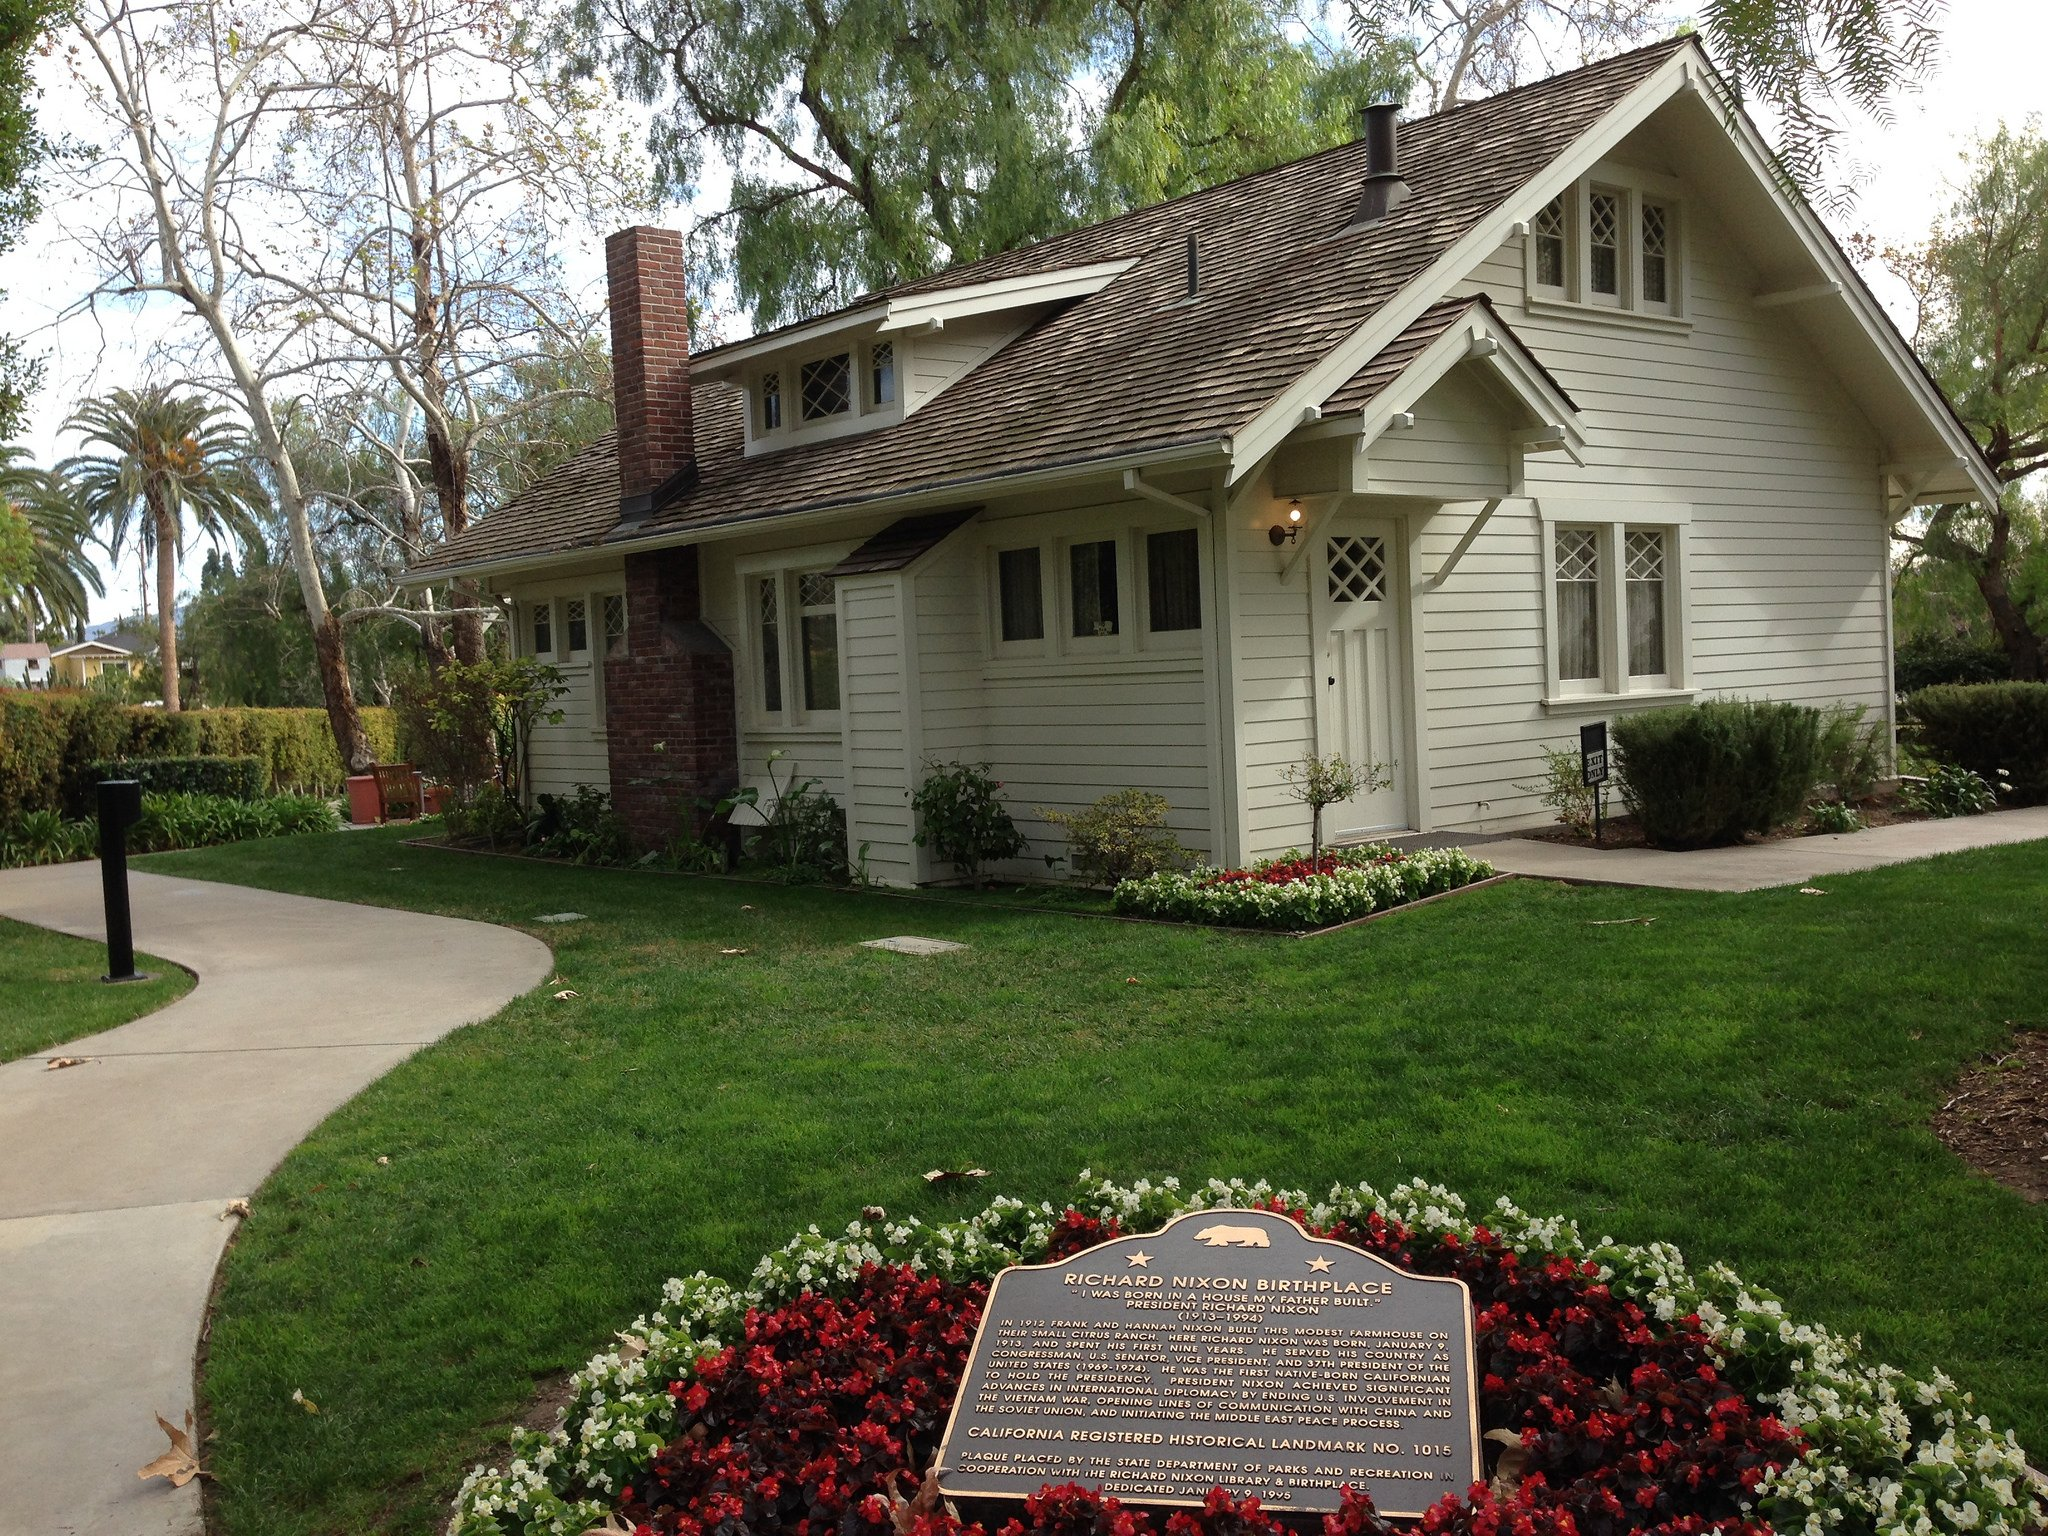 Nixon's boyhood home, where he was born in 1913, is located on the grounds and has been restored to its original condition